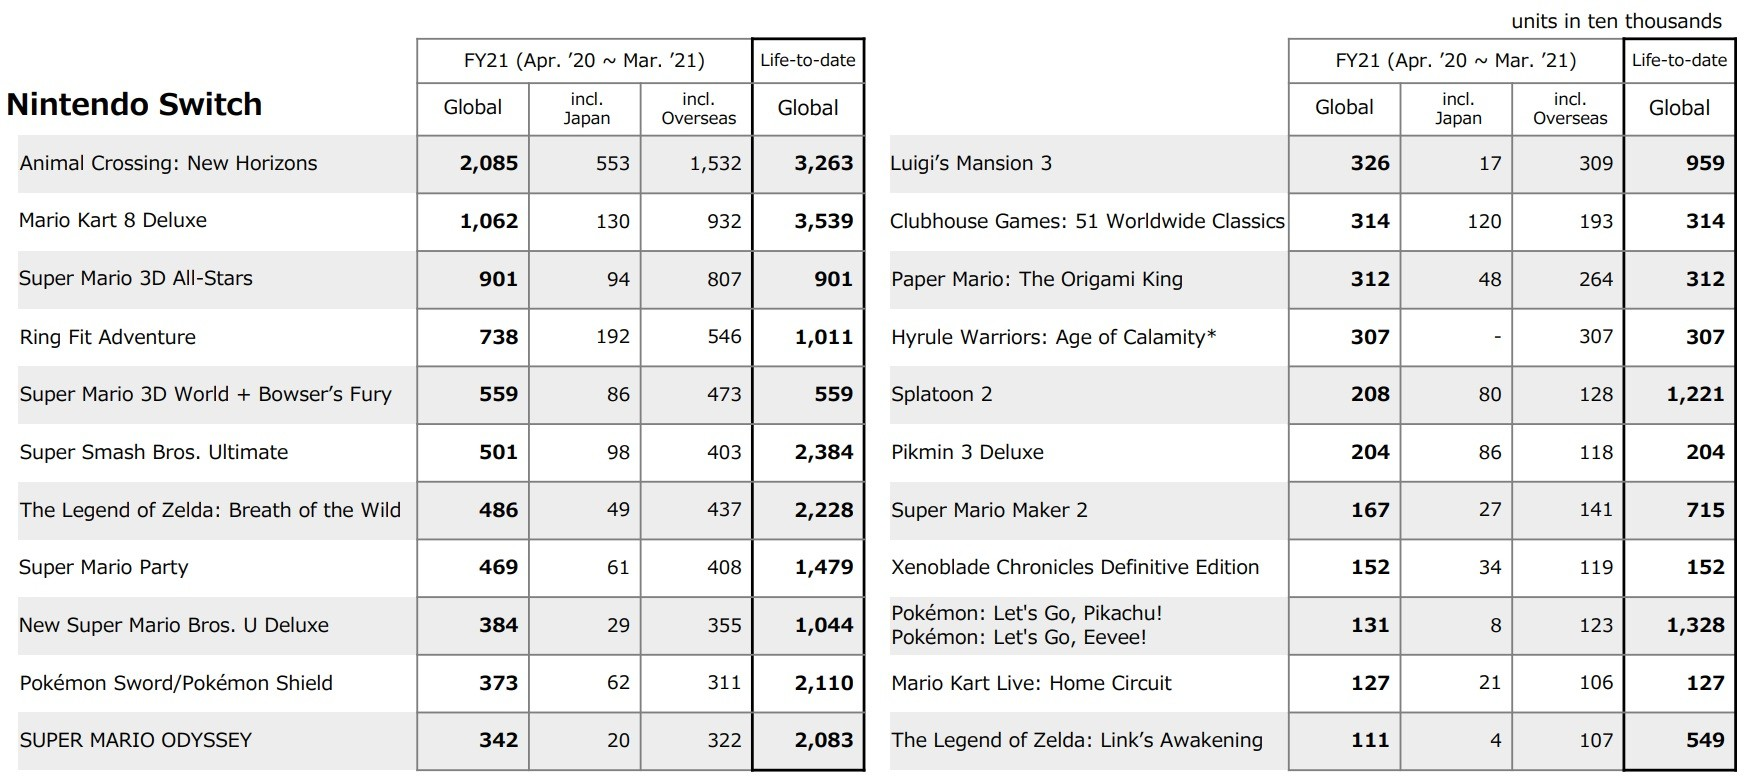 Table of titles published by Nintendo that sold over one million units in fiscal year 2021